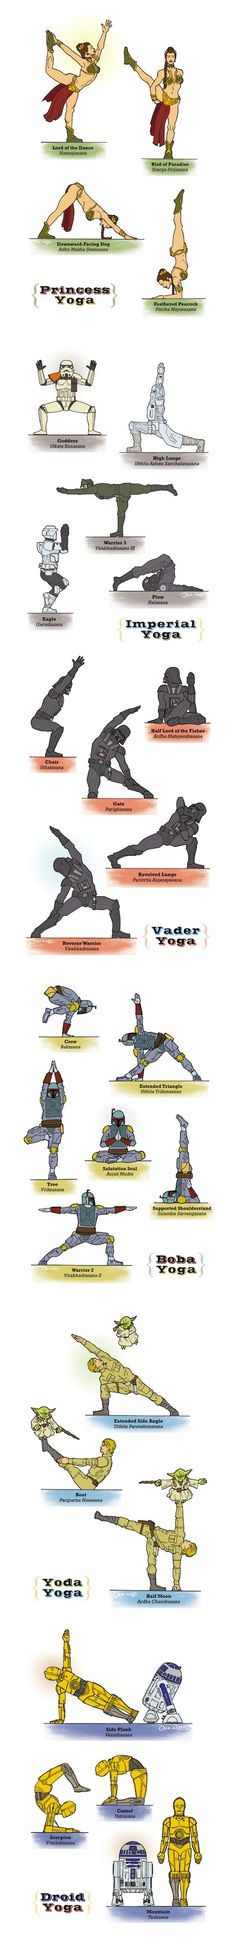 Star Wars Yoga by Rob Osborne - are you kidding me?  Mixing my two favorites!  Ahhhh I just died!  ;)